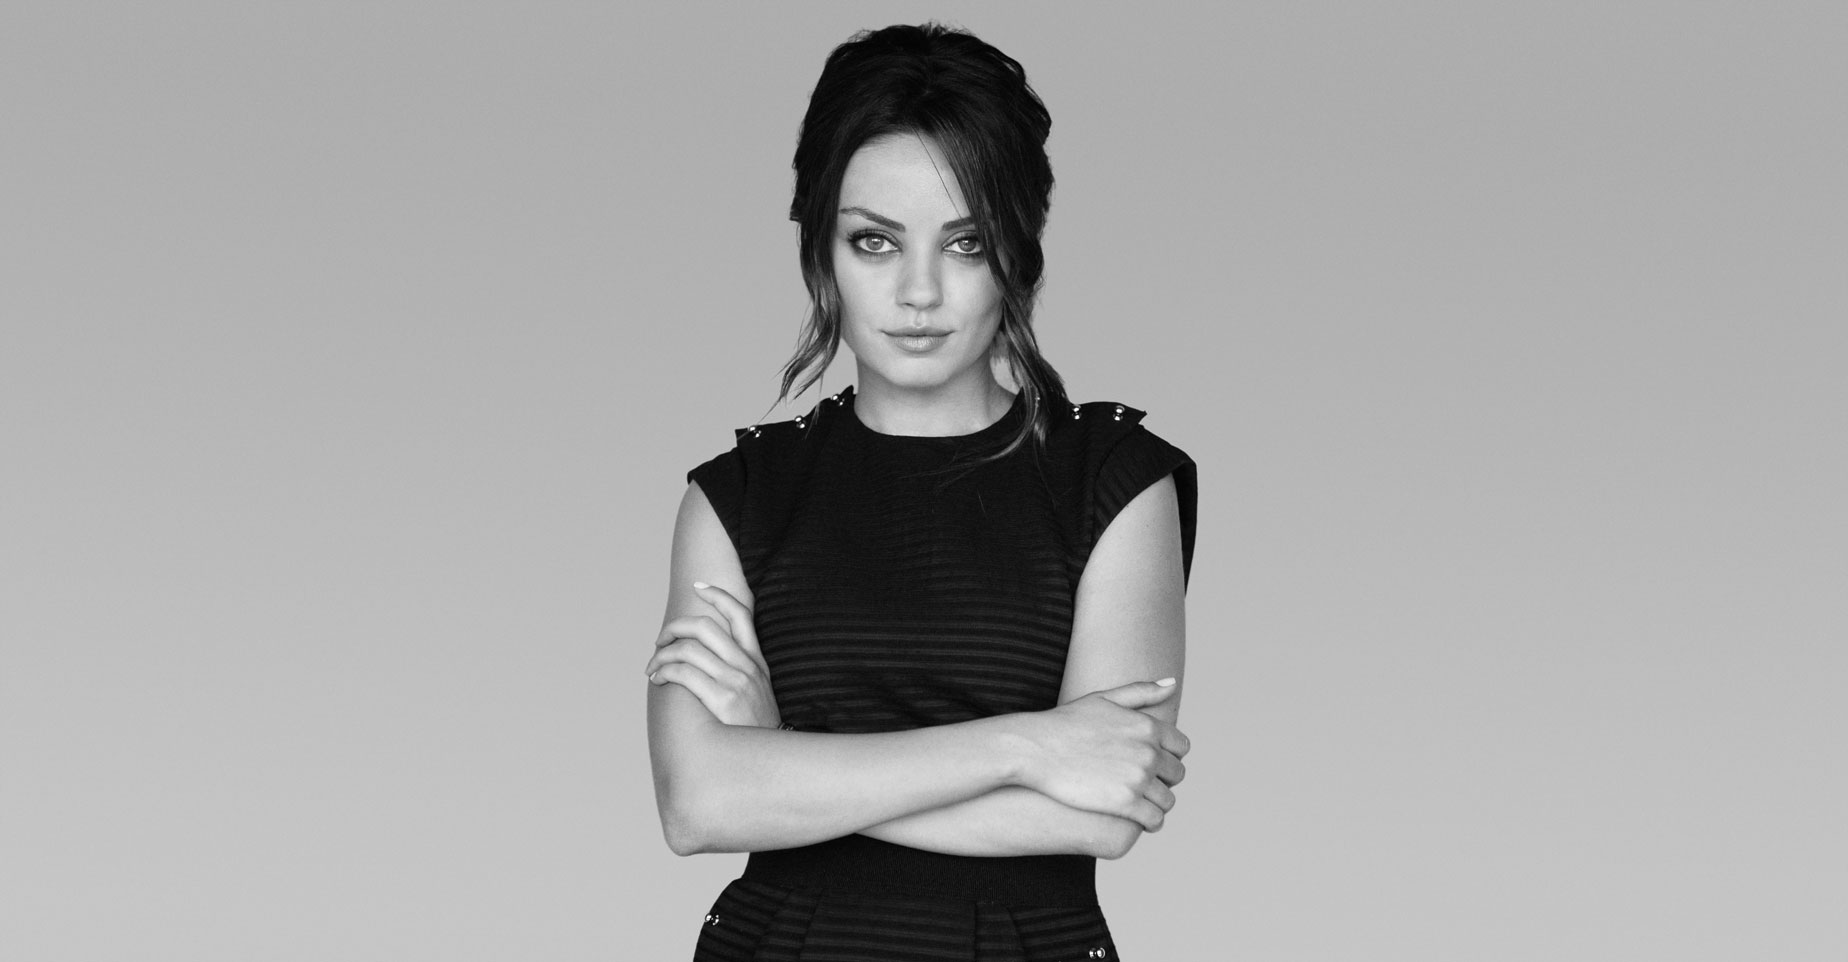 Mila Kunis black and white - Mila Kunis Net Worth, Movies, Family, Husband, Pictures and Wallpapers